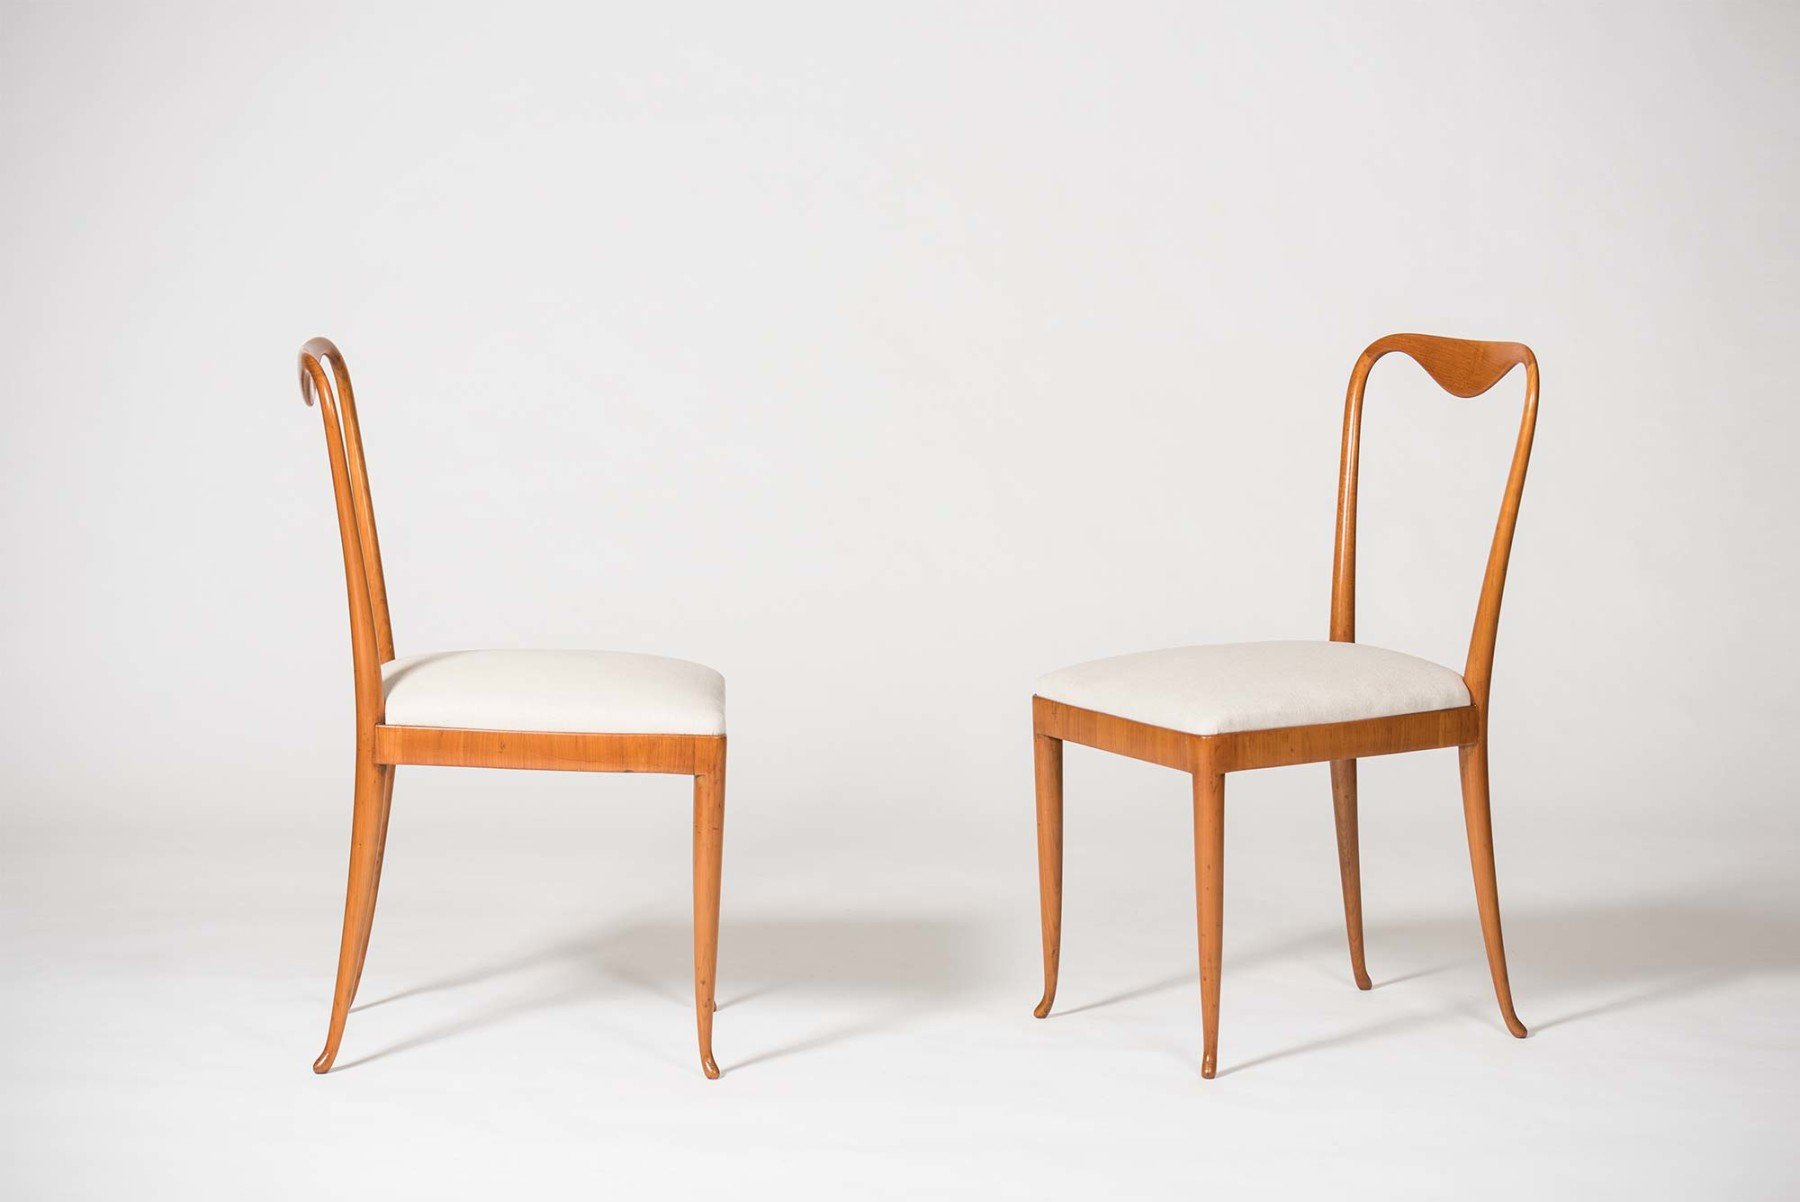 Guglielmo Ulrich |   Chair - pair